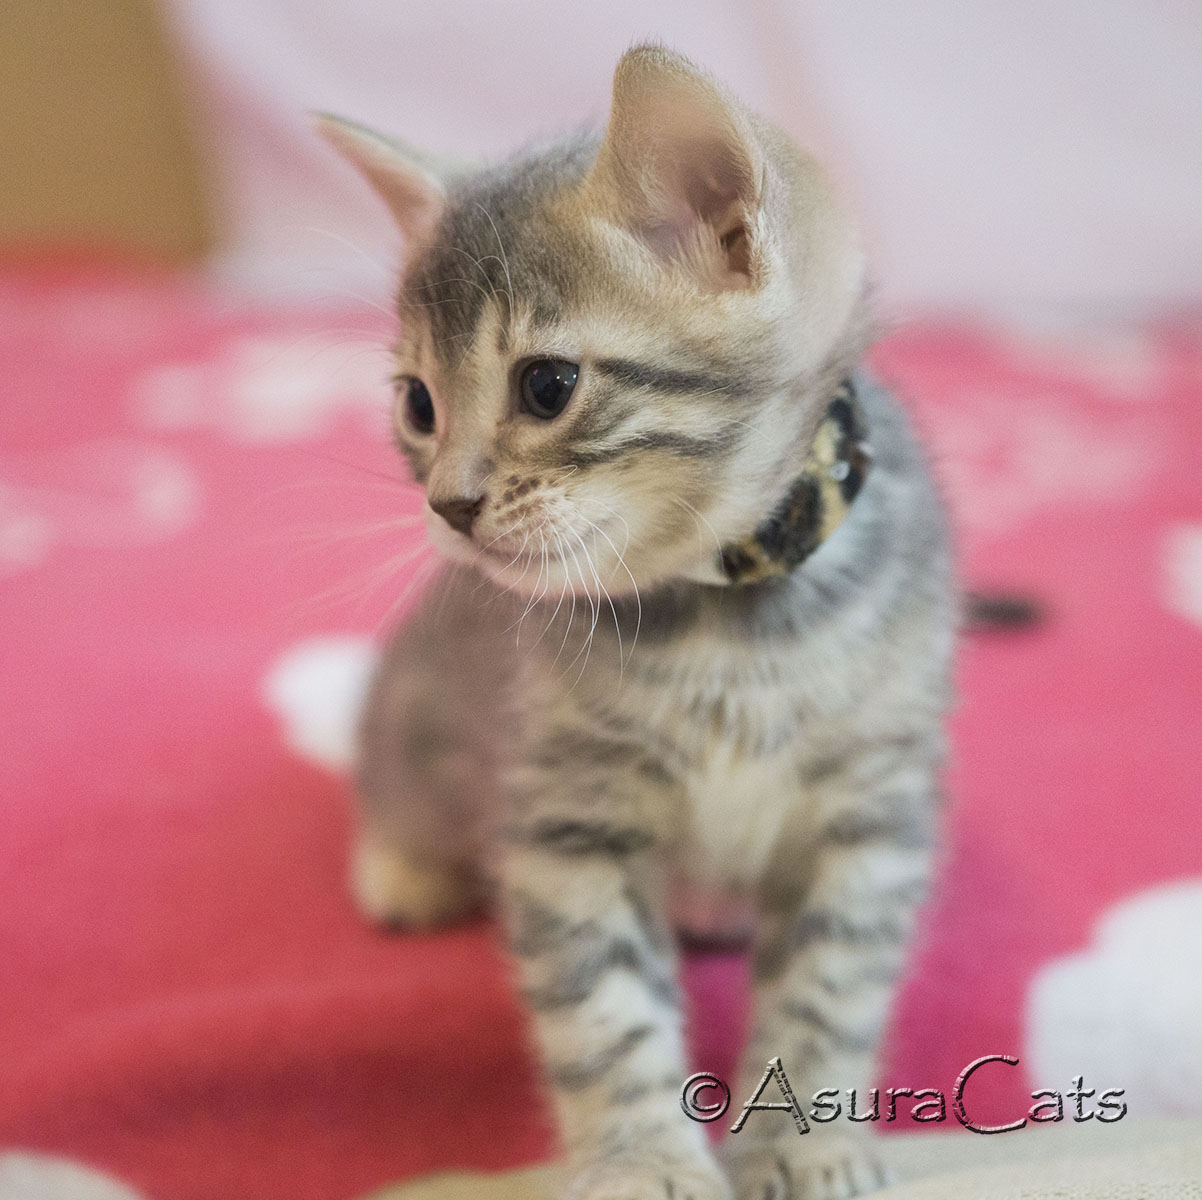 AsuraCats Rainbow Dash - Blue spotted/rosetted female Bengal kitten